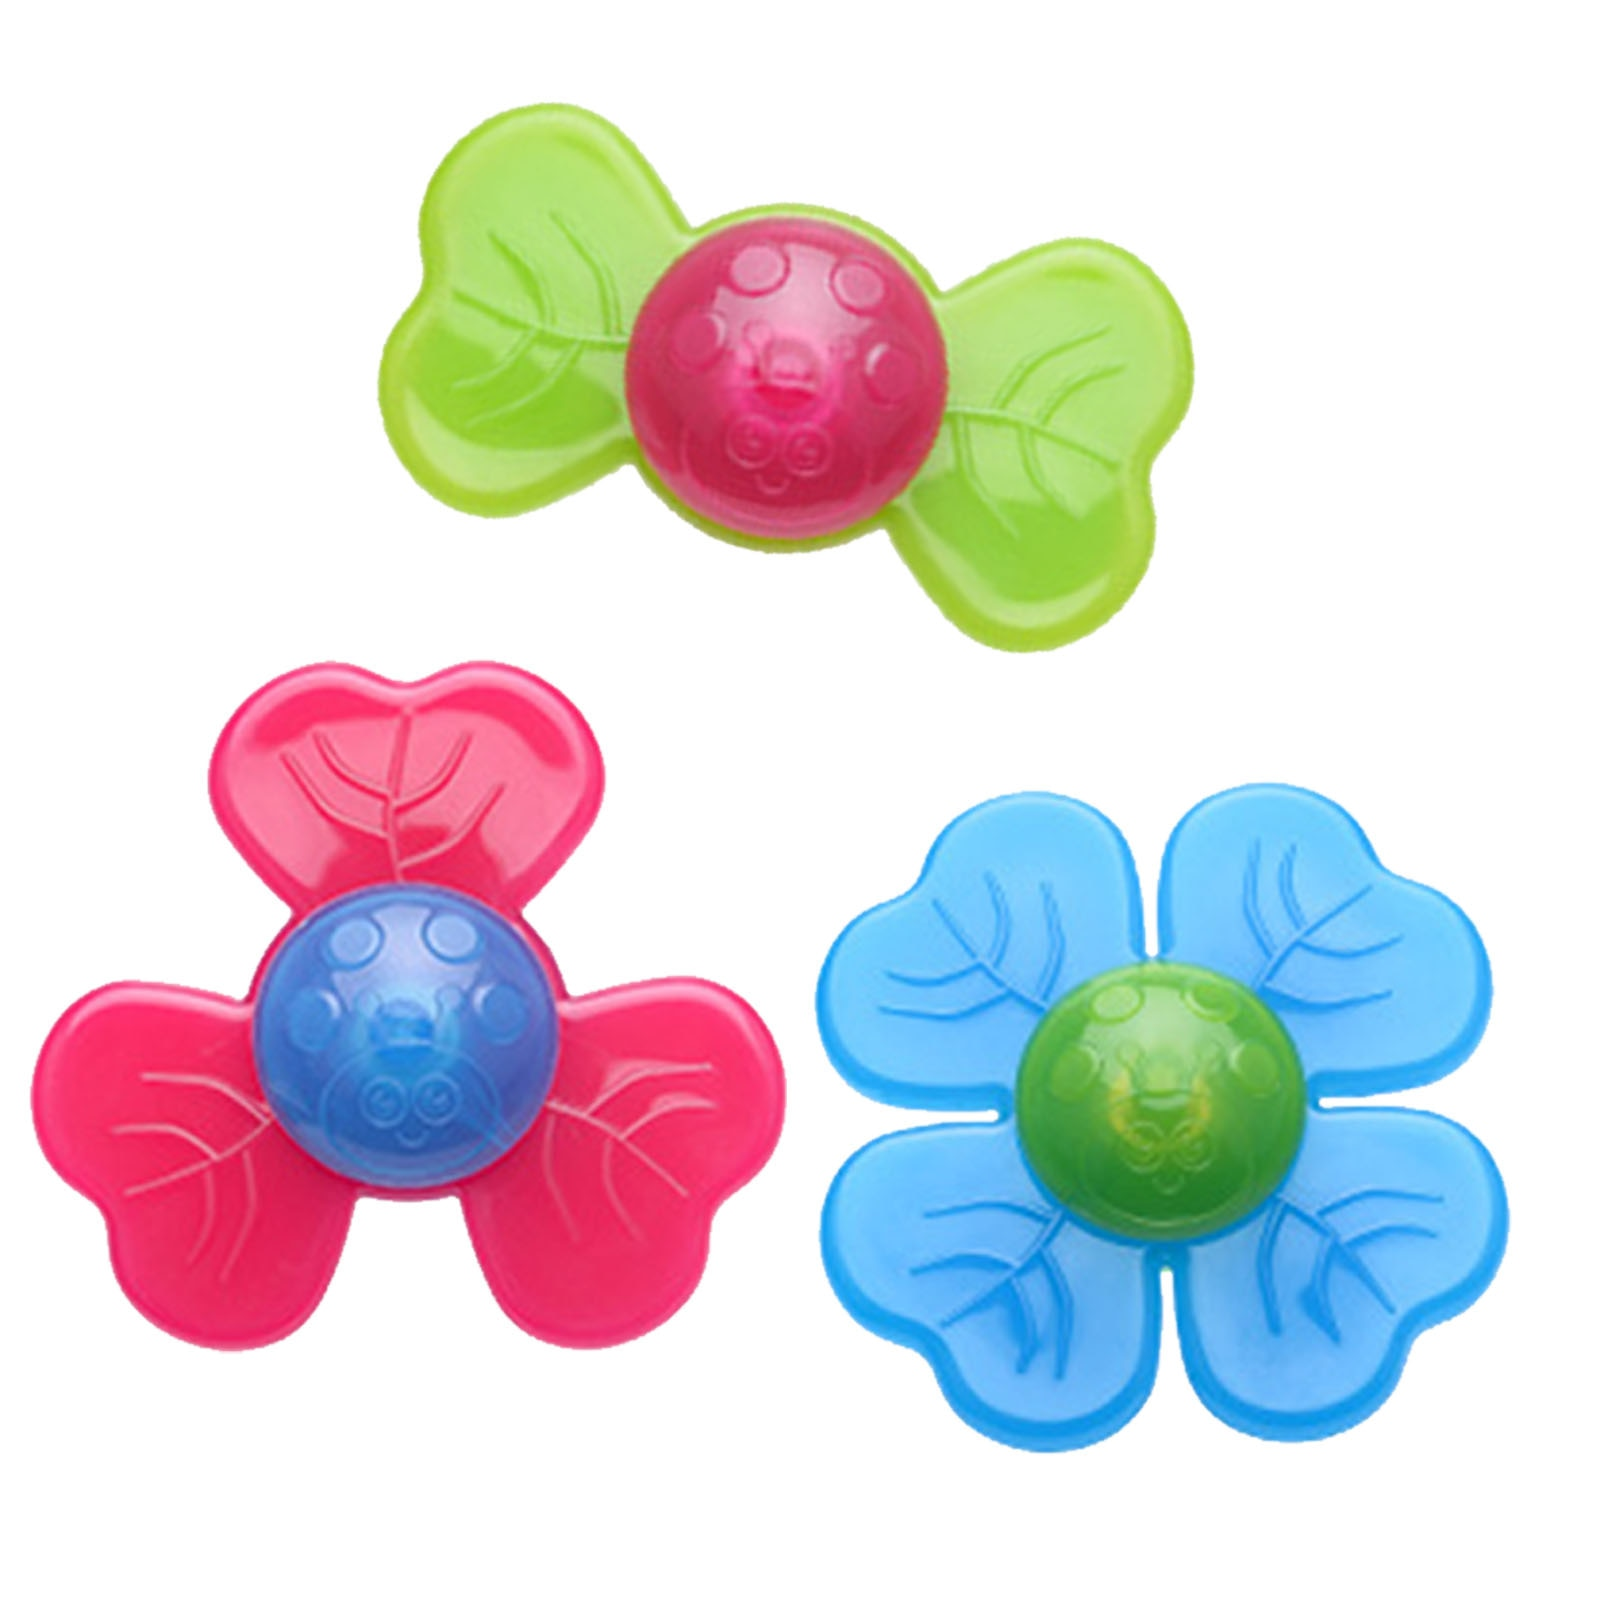 Spinning Top Baby Sucker Top Toy Creative Bath Swimming Water Toys Sucker Suction Cup Fun Game Baby Teether Toys enlarge